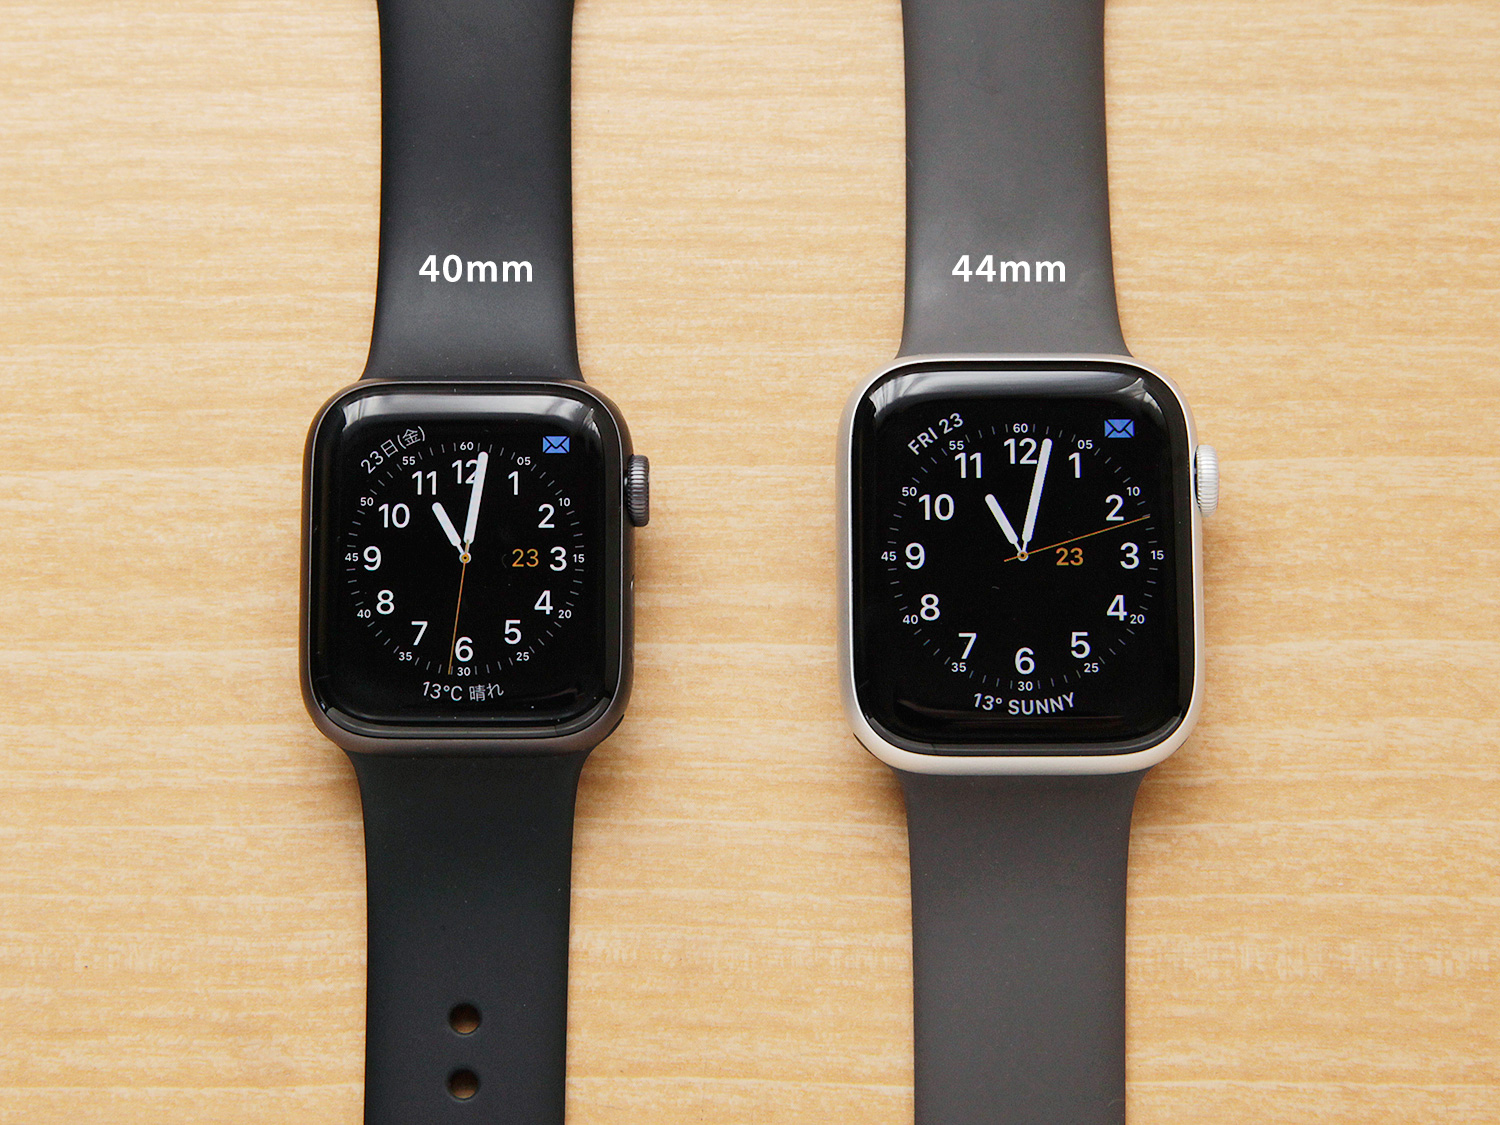 Apple Watch Seires 4の40mmと44mmサイズ比較(文字盤)